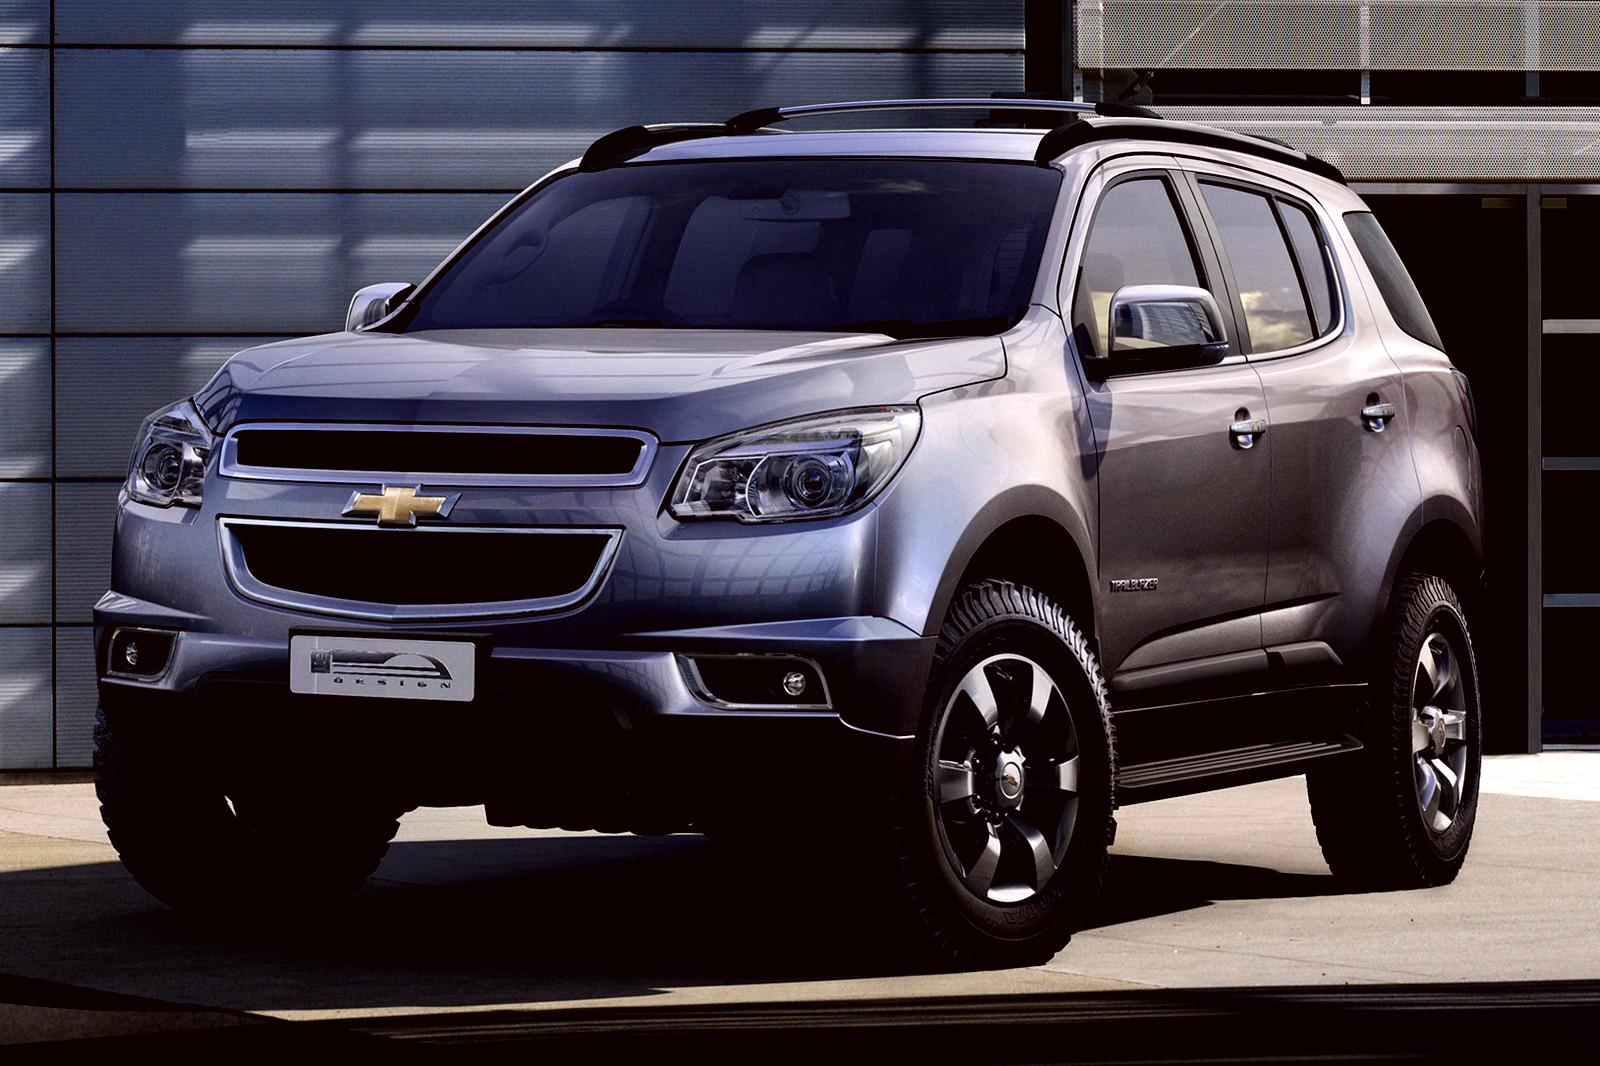 HD Cars Wallpapers: Chevrolet Trailblazer